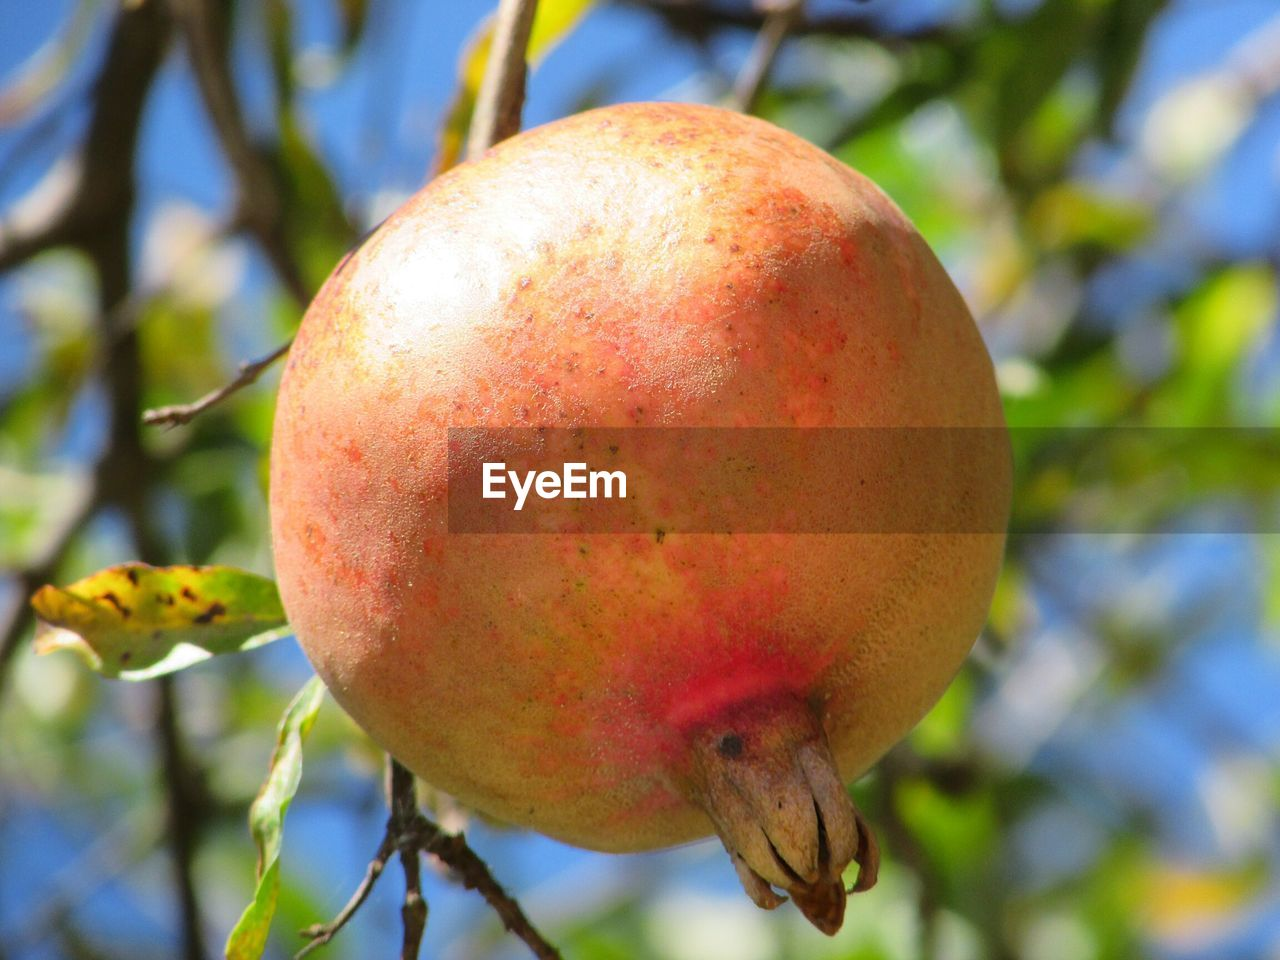 healthy eating, fruit, food and drink, close-up, food, focus on foreground, freshness, wellbeing, plant, tree, no people, growth, day, nature, fruit tree, red, branch, apple tree, outdoors, beauty in nature, ripe